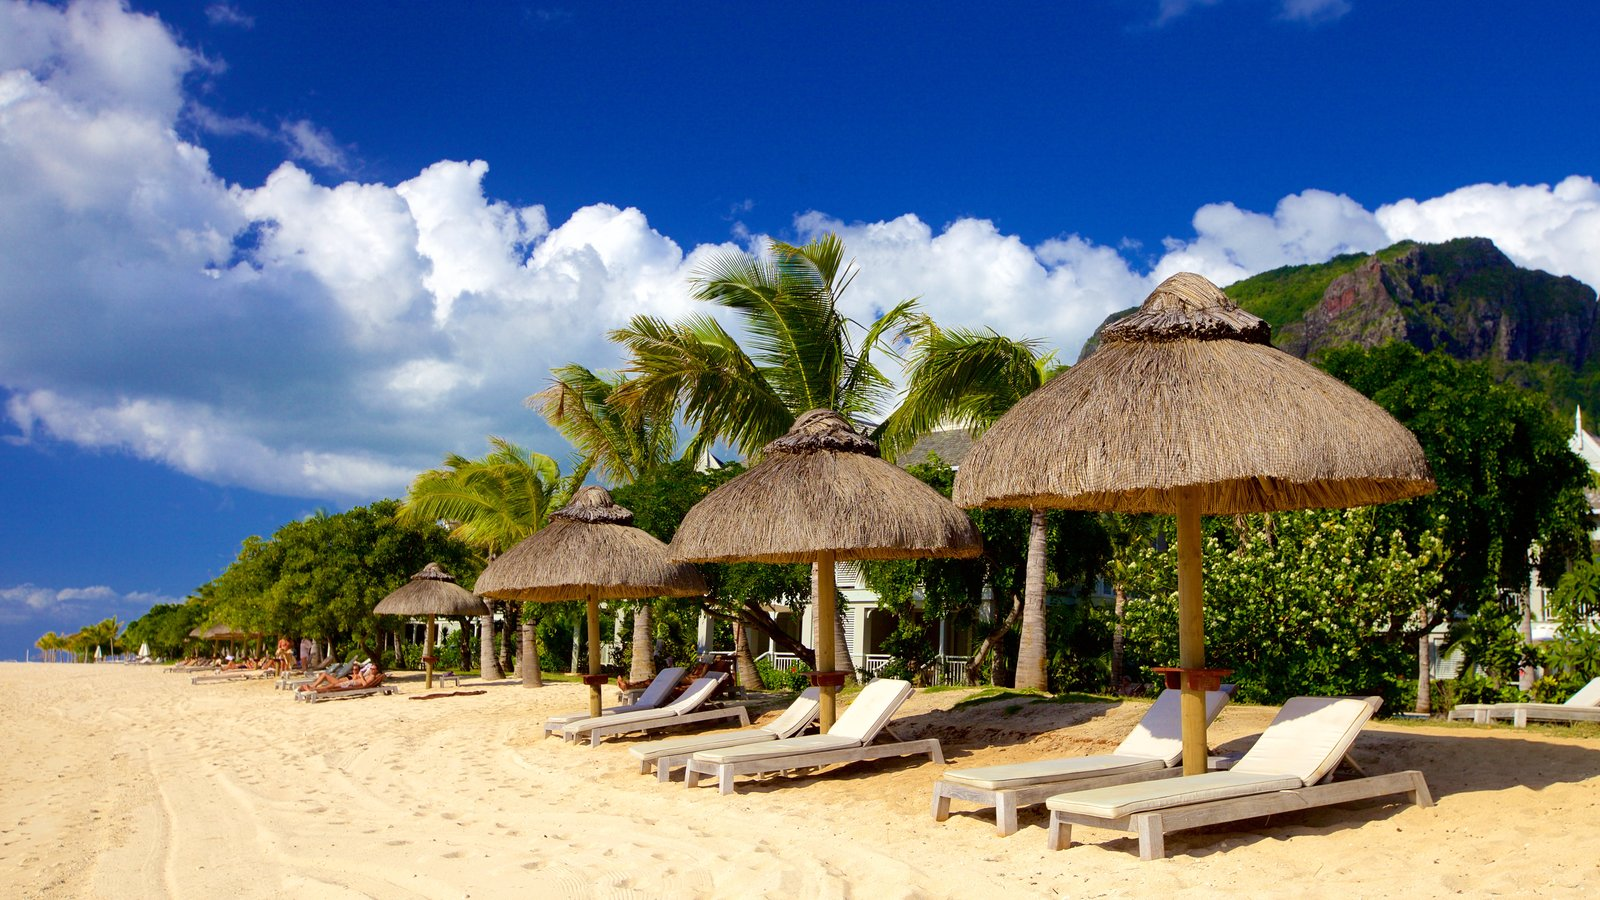 Beach Pictures View Images Of Le Morne Afrika Et Tour Horseback Riding Featuring A Luxury Hotel Or Resort And Sandy